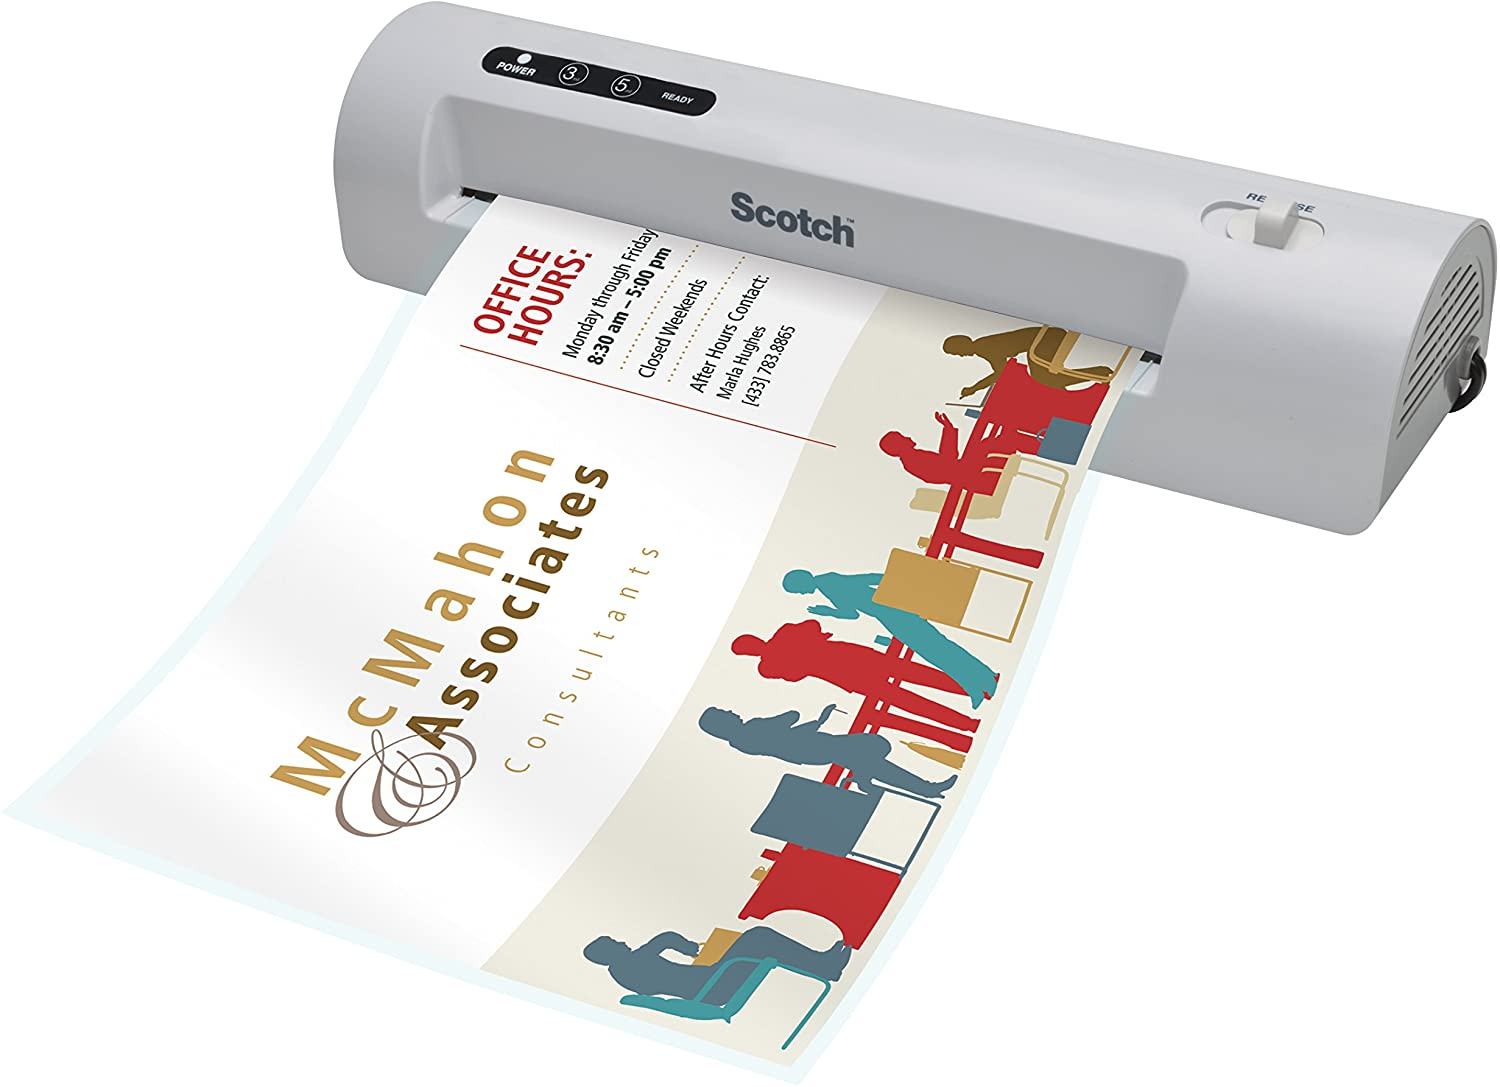 Scotch Thermal Laminator, TL901C-T